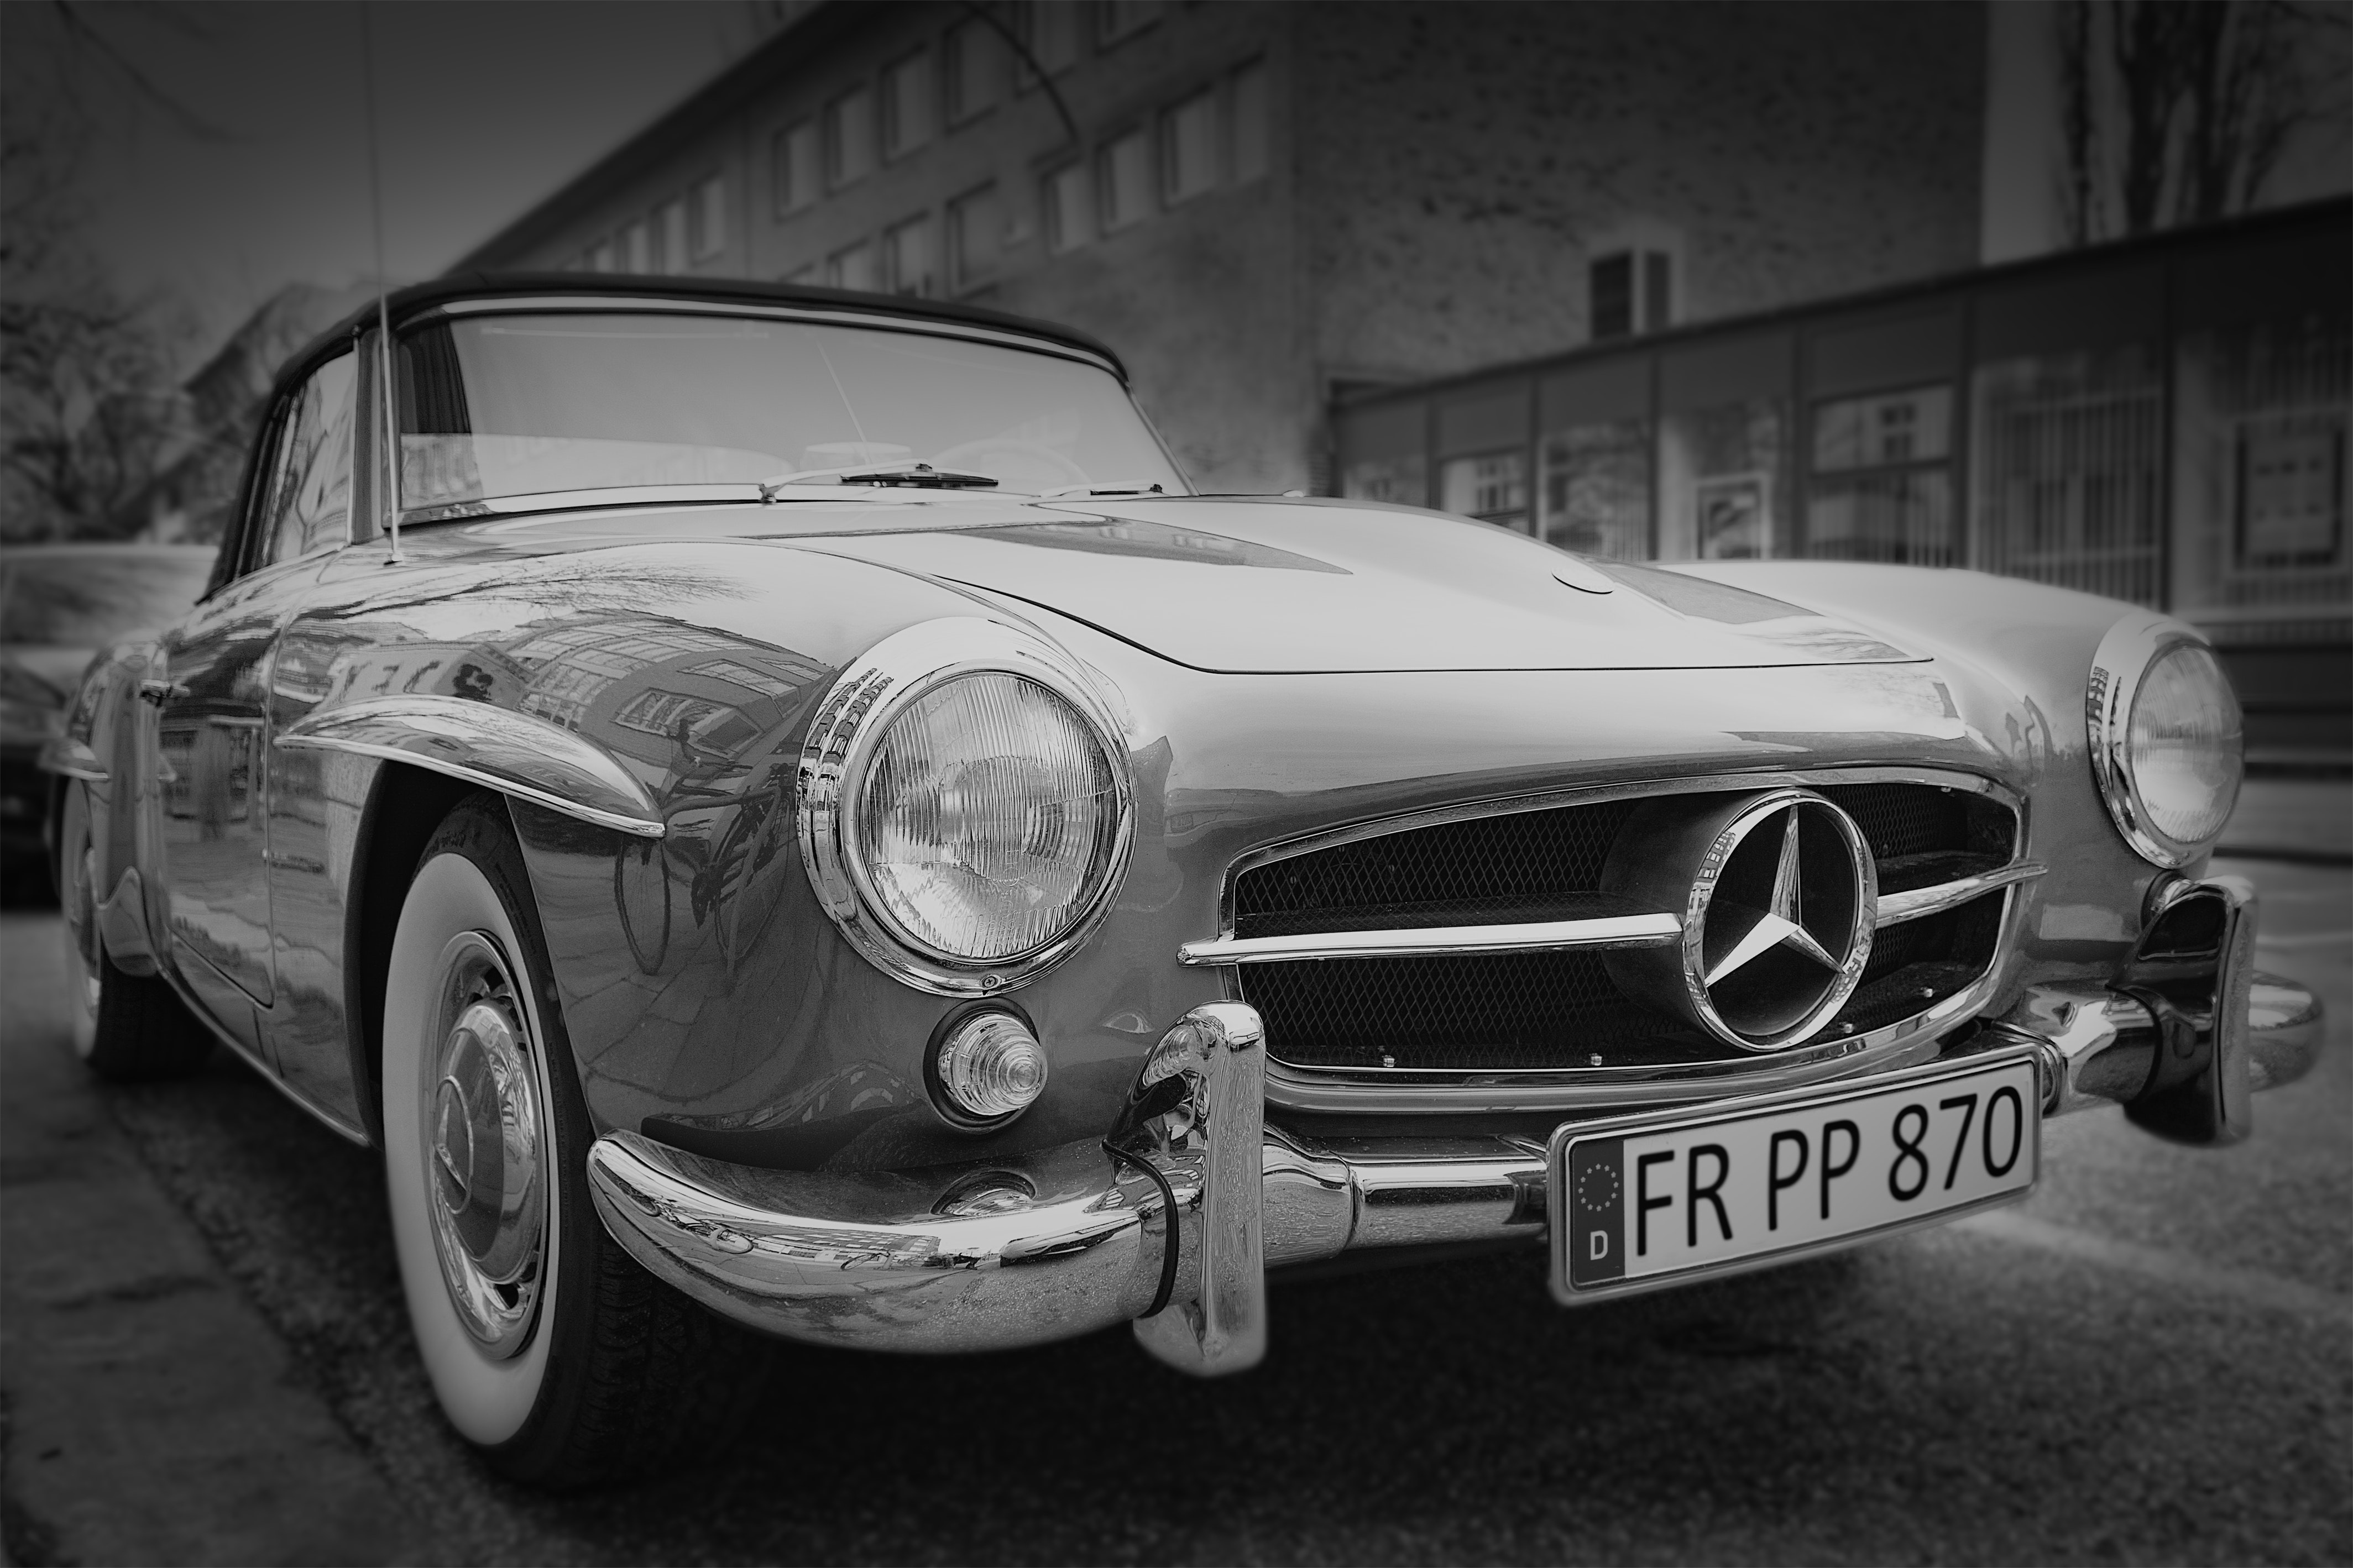 Grayscale Photography of Classic Mercedes Benz Car, Automobile, Automotive, Black-and-white, Car, HQ Photo